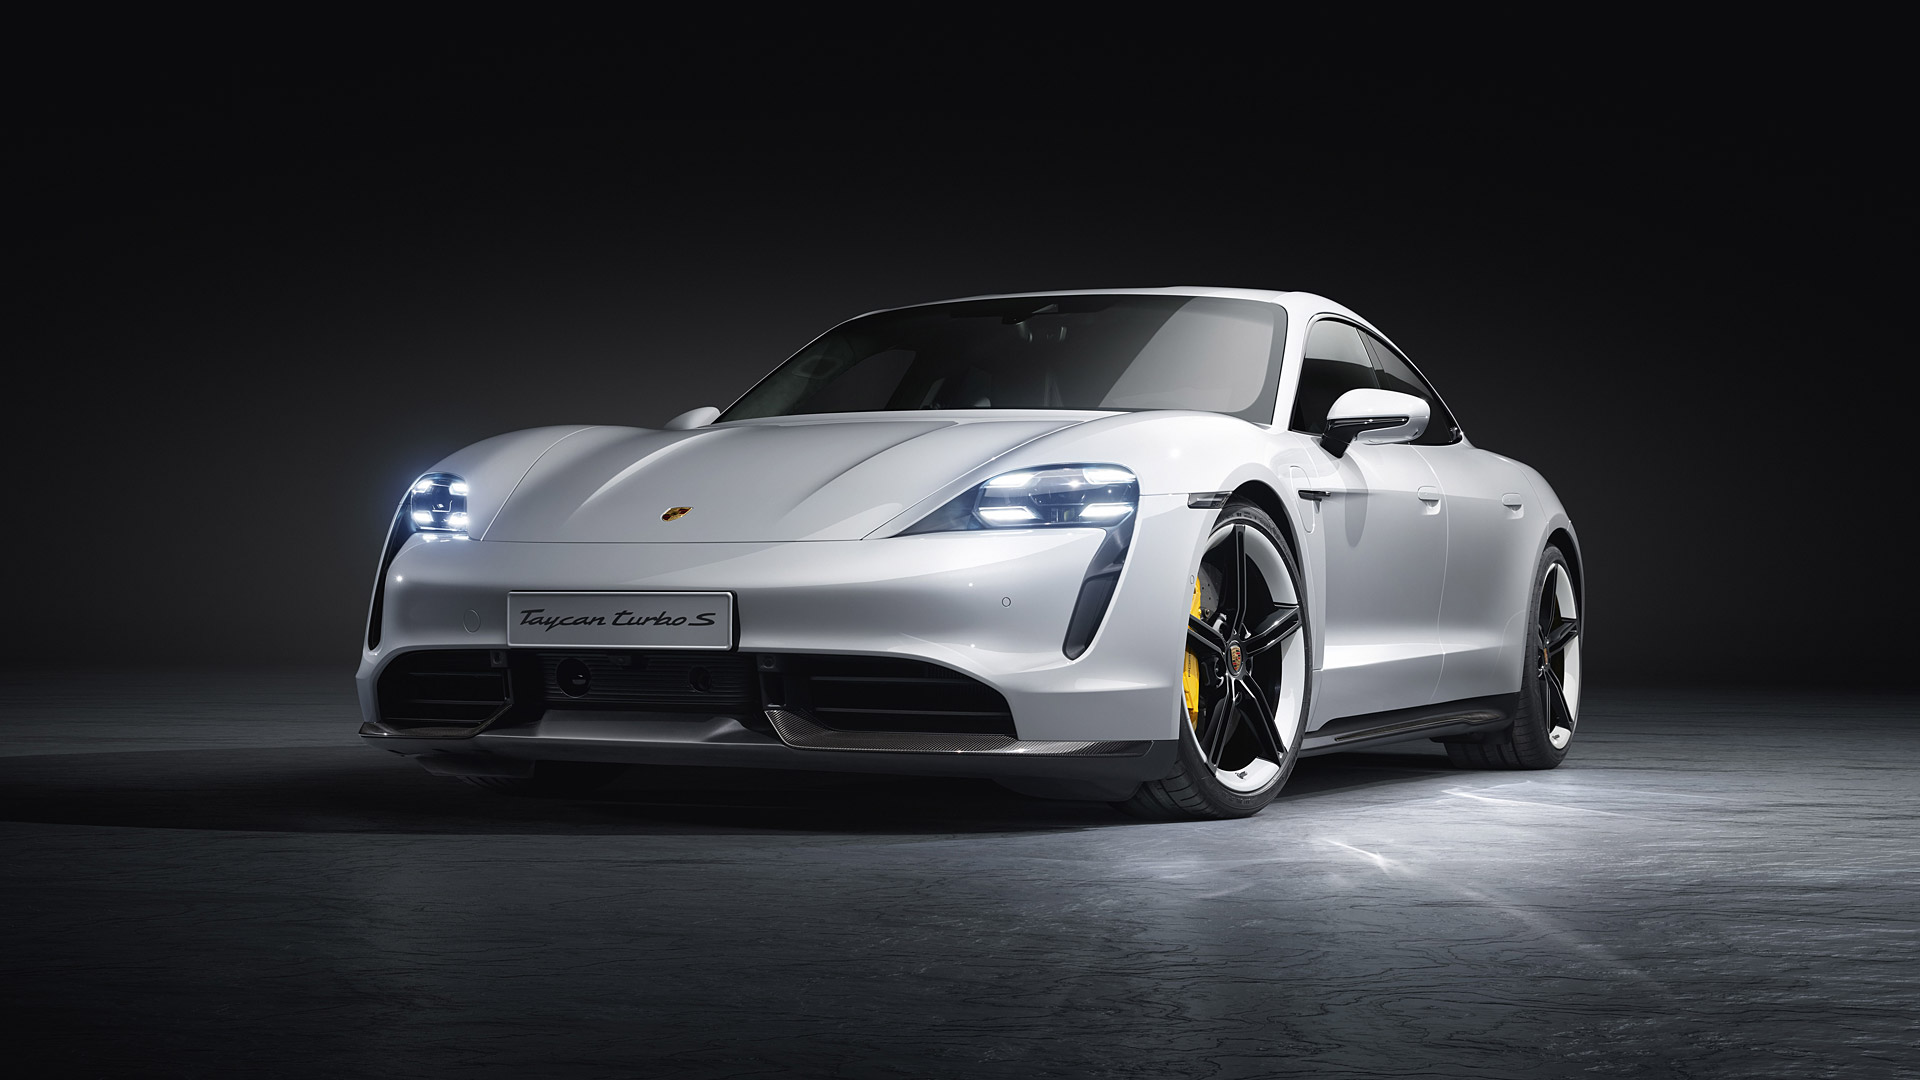 2020 Porsche Taycan Wallpapers HD Images   WSupercars 1920x1080